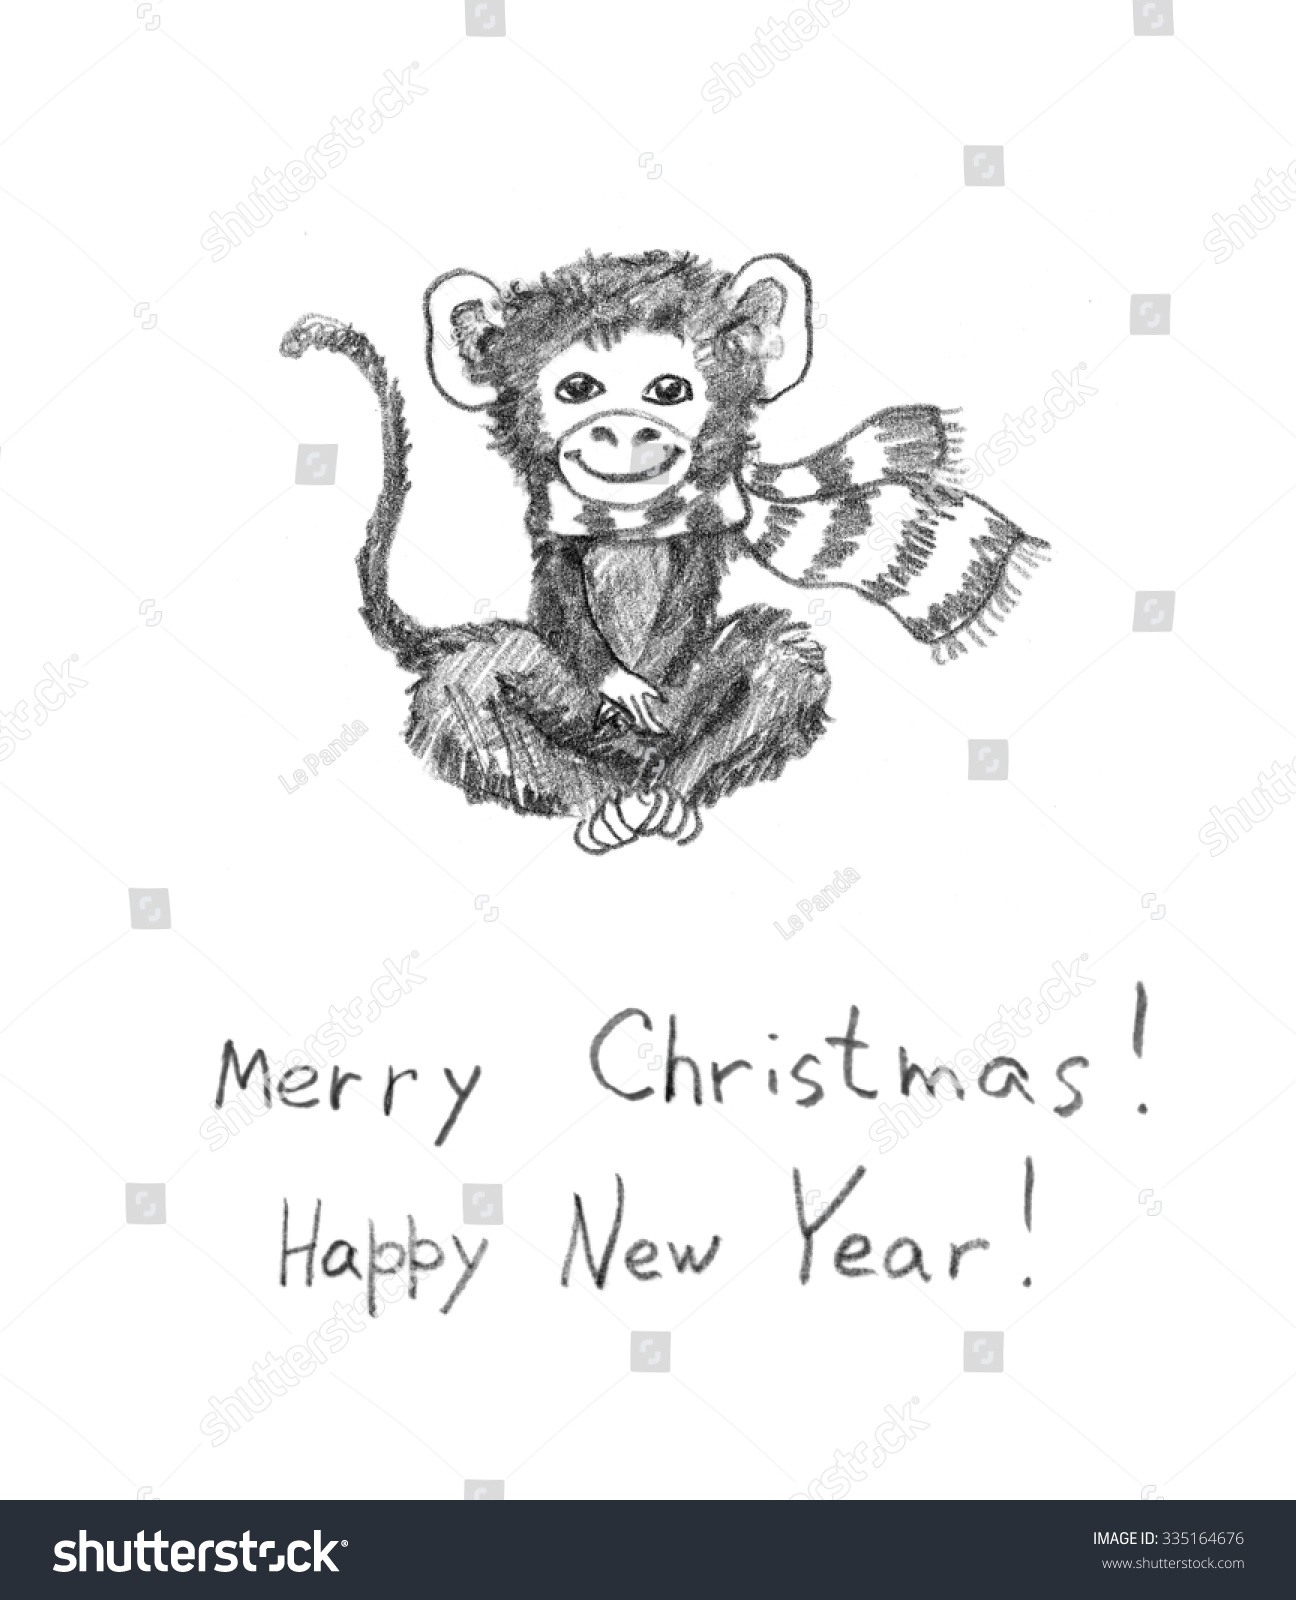 Christmas monkey pencil painted sketch christmas greeting card